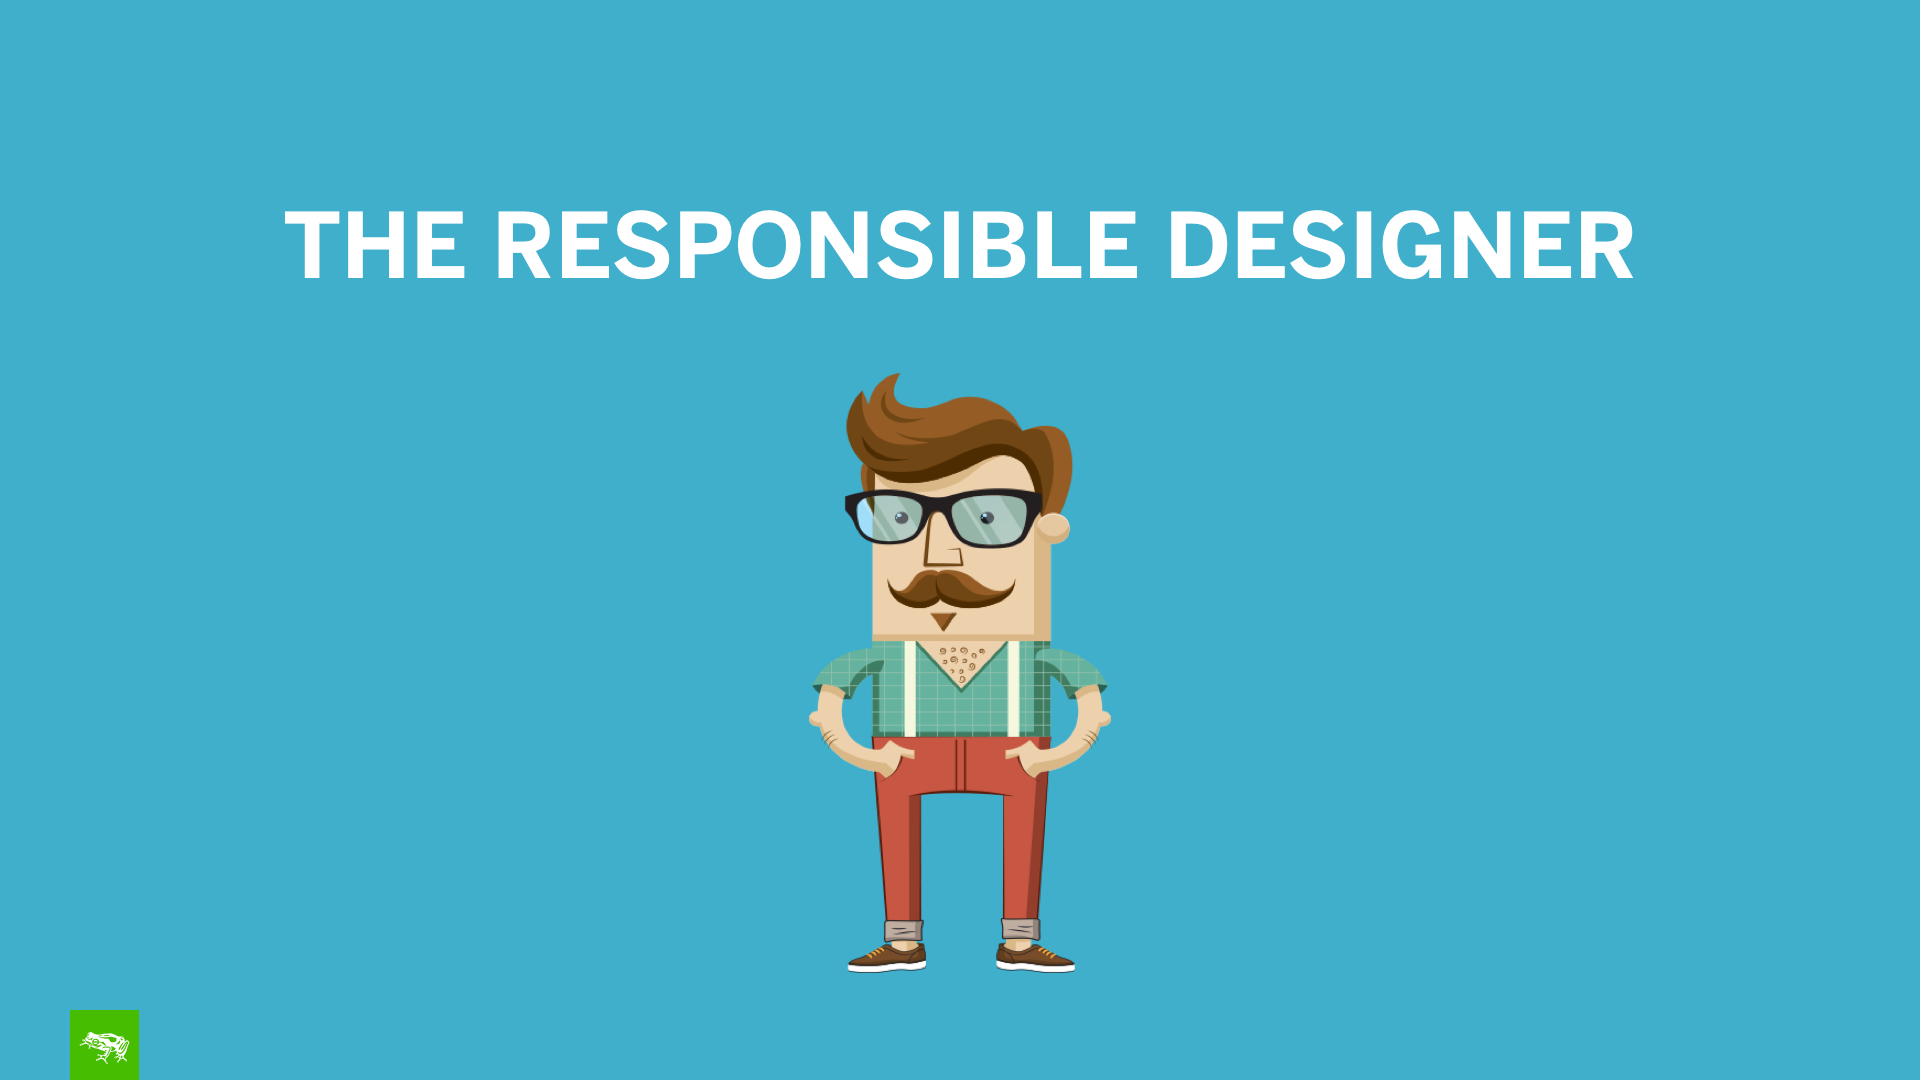 The Responsible Designer